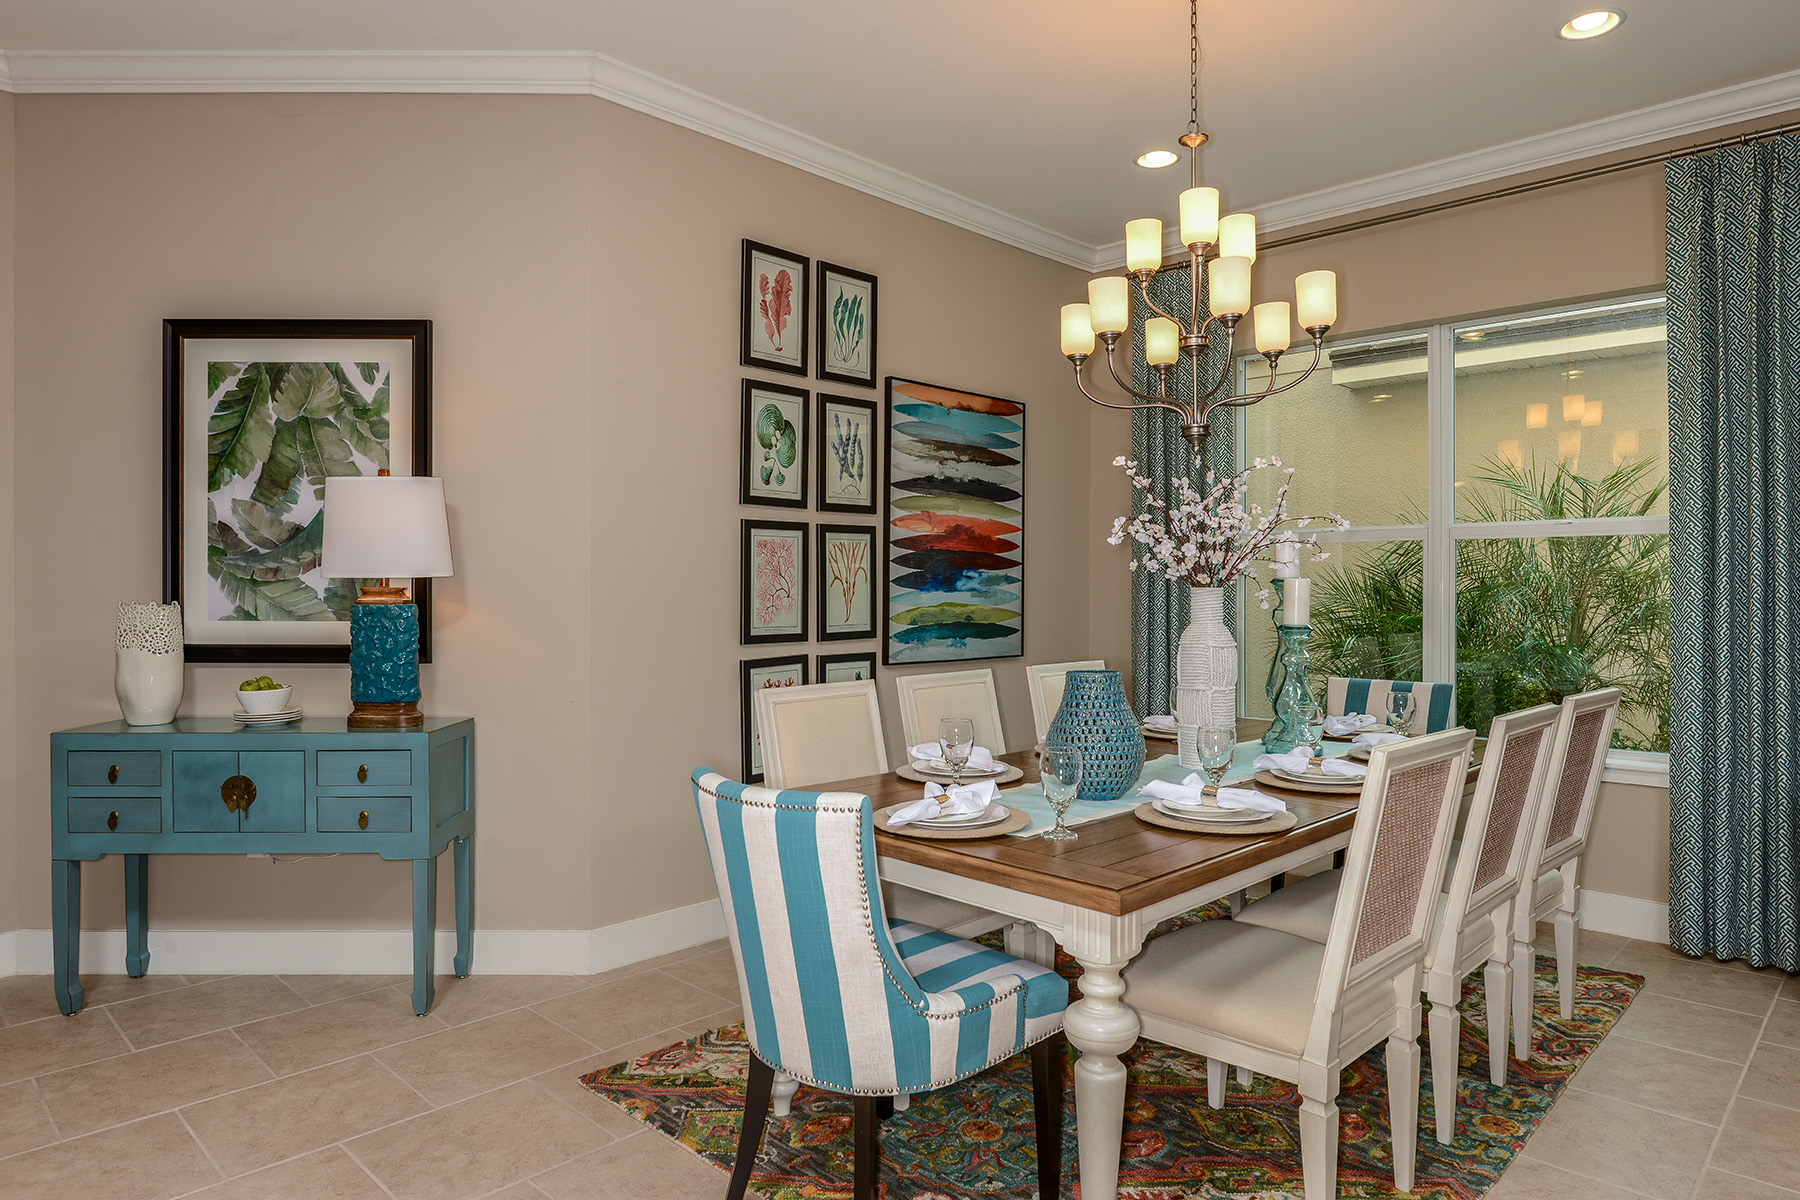 Banyan Plan Dining at Compass Landing in Naples Florida by Mattamy Homes